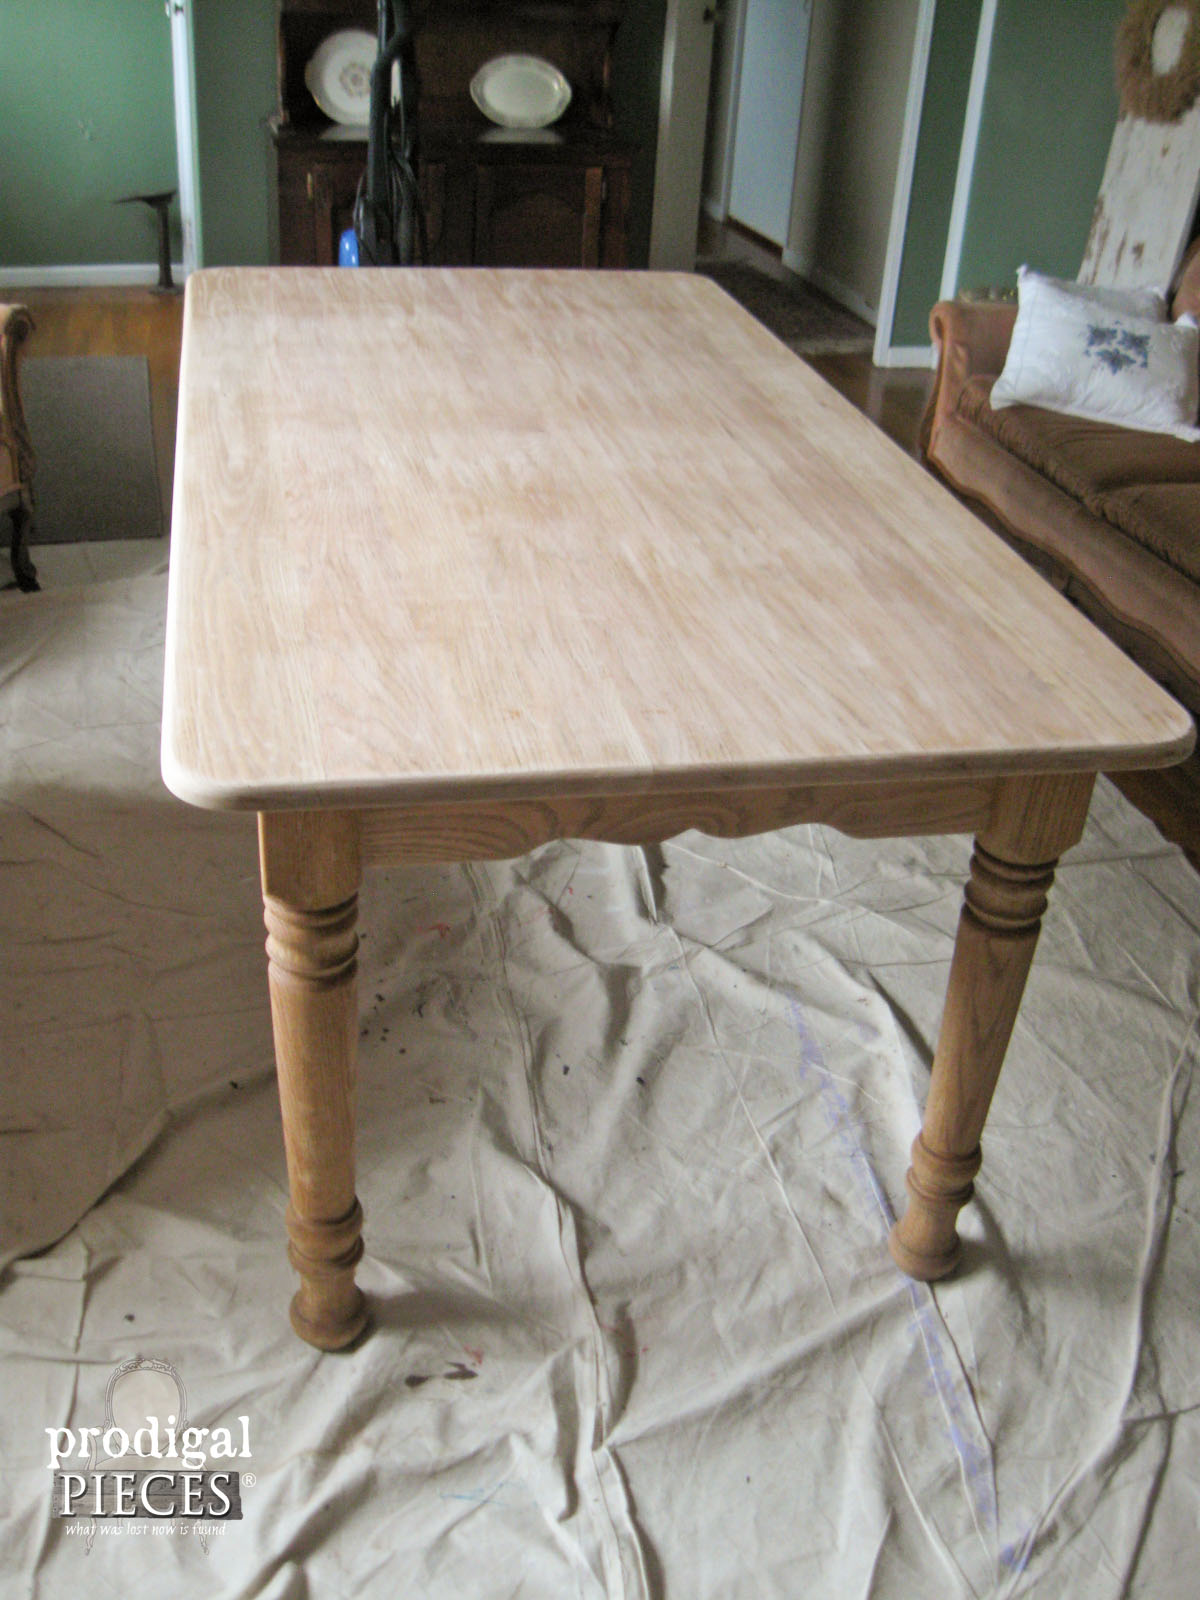 Farmhouse Table Sanded And Stripped For Whitewash | Prodigal Pieces |  Www.prodigalpieces.com